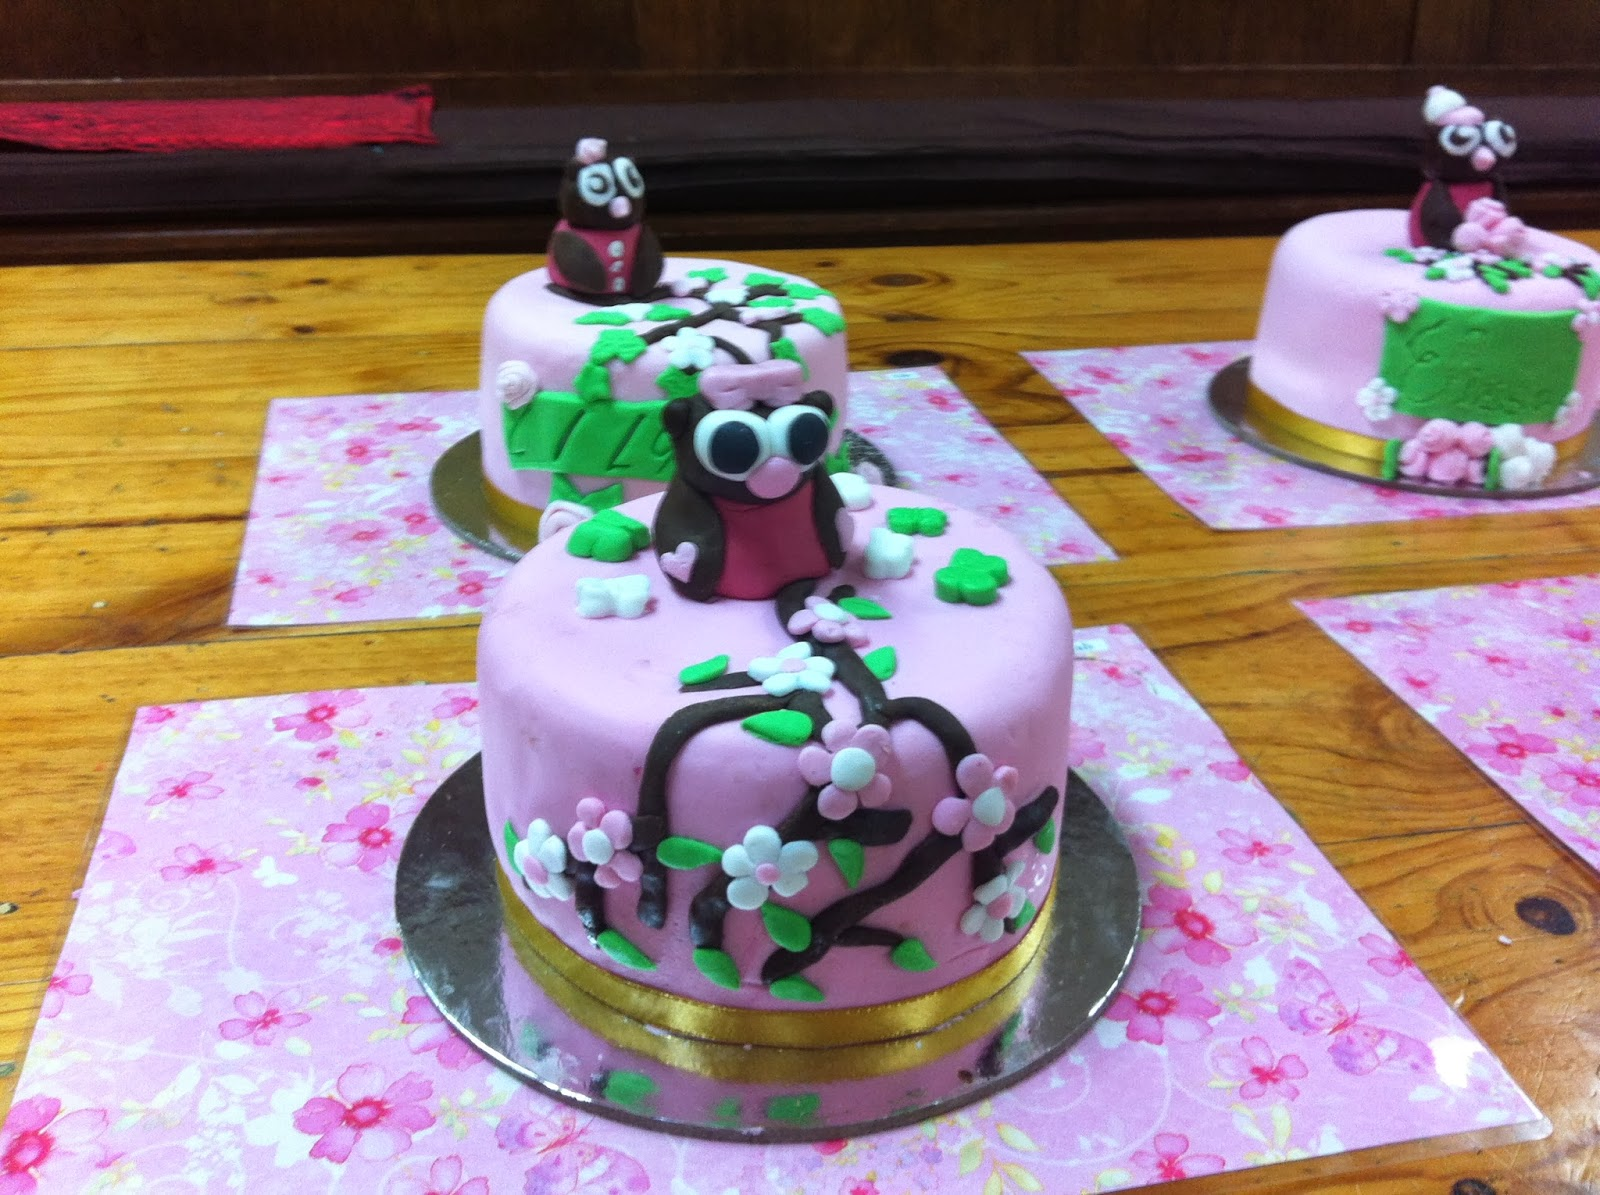 Cake Decorating Classes For 11 Year Olds : Elegant Cakes and Party Dates: Cake Decorating class ...